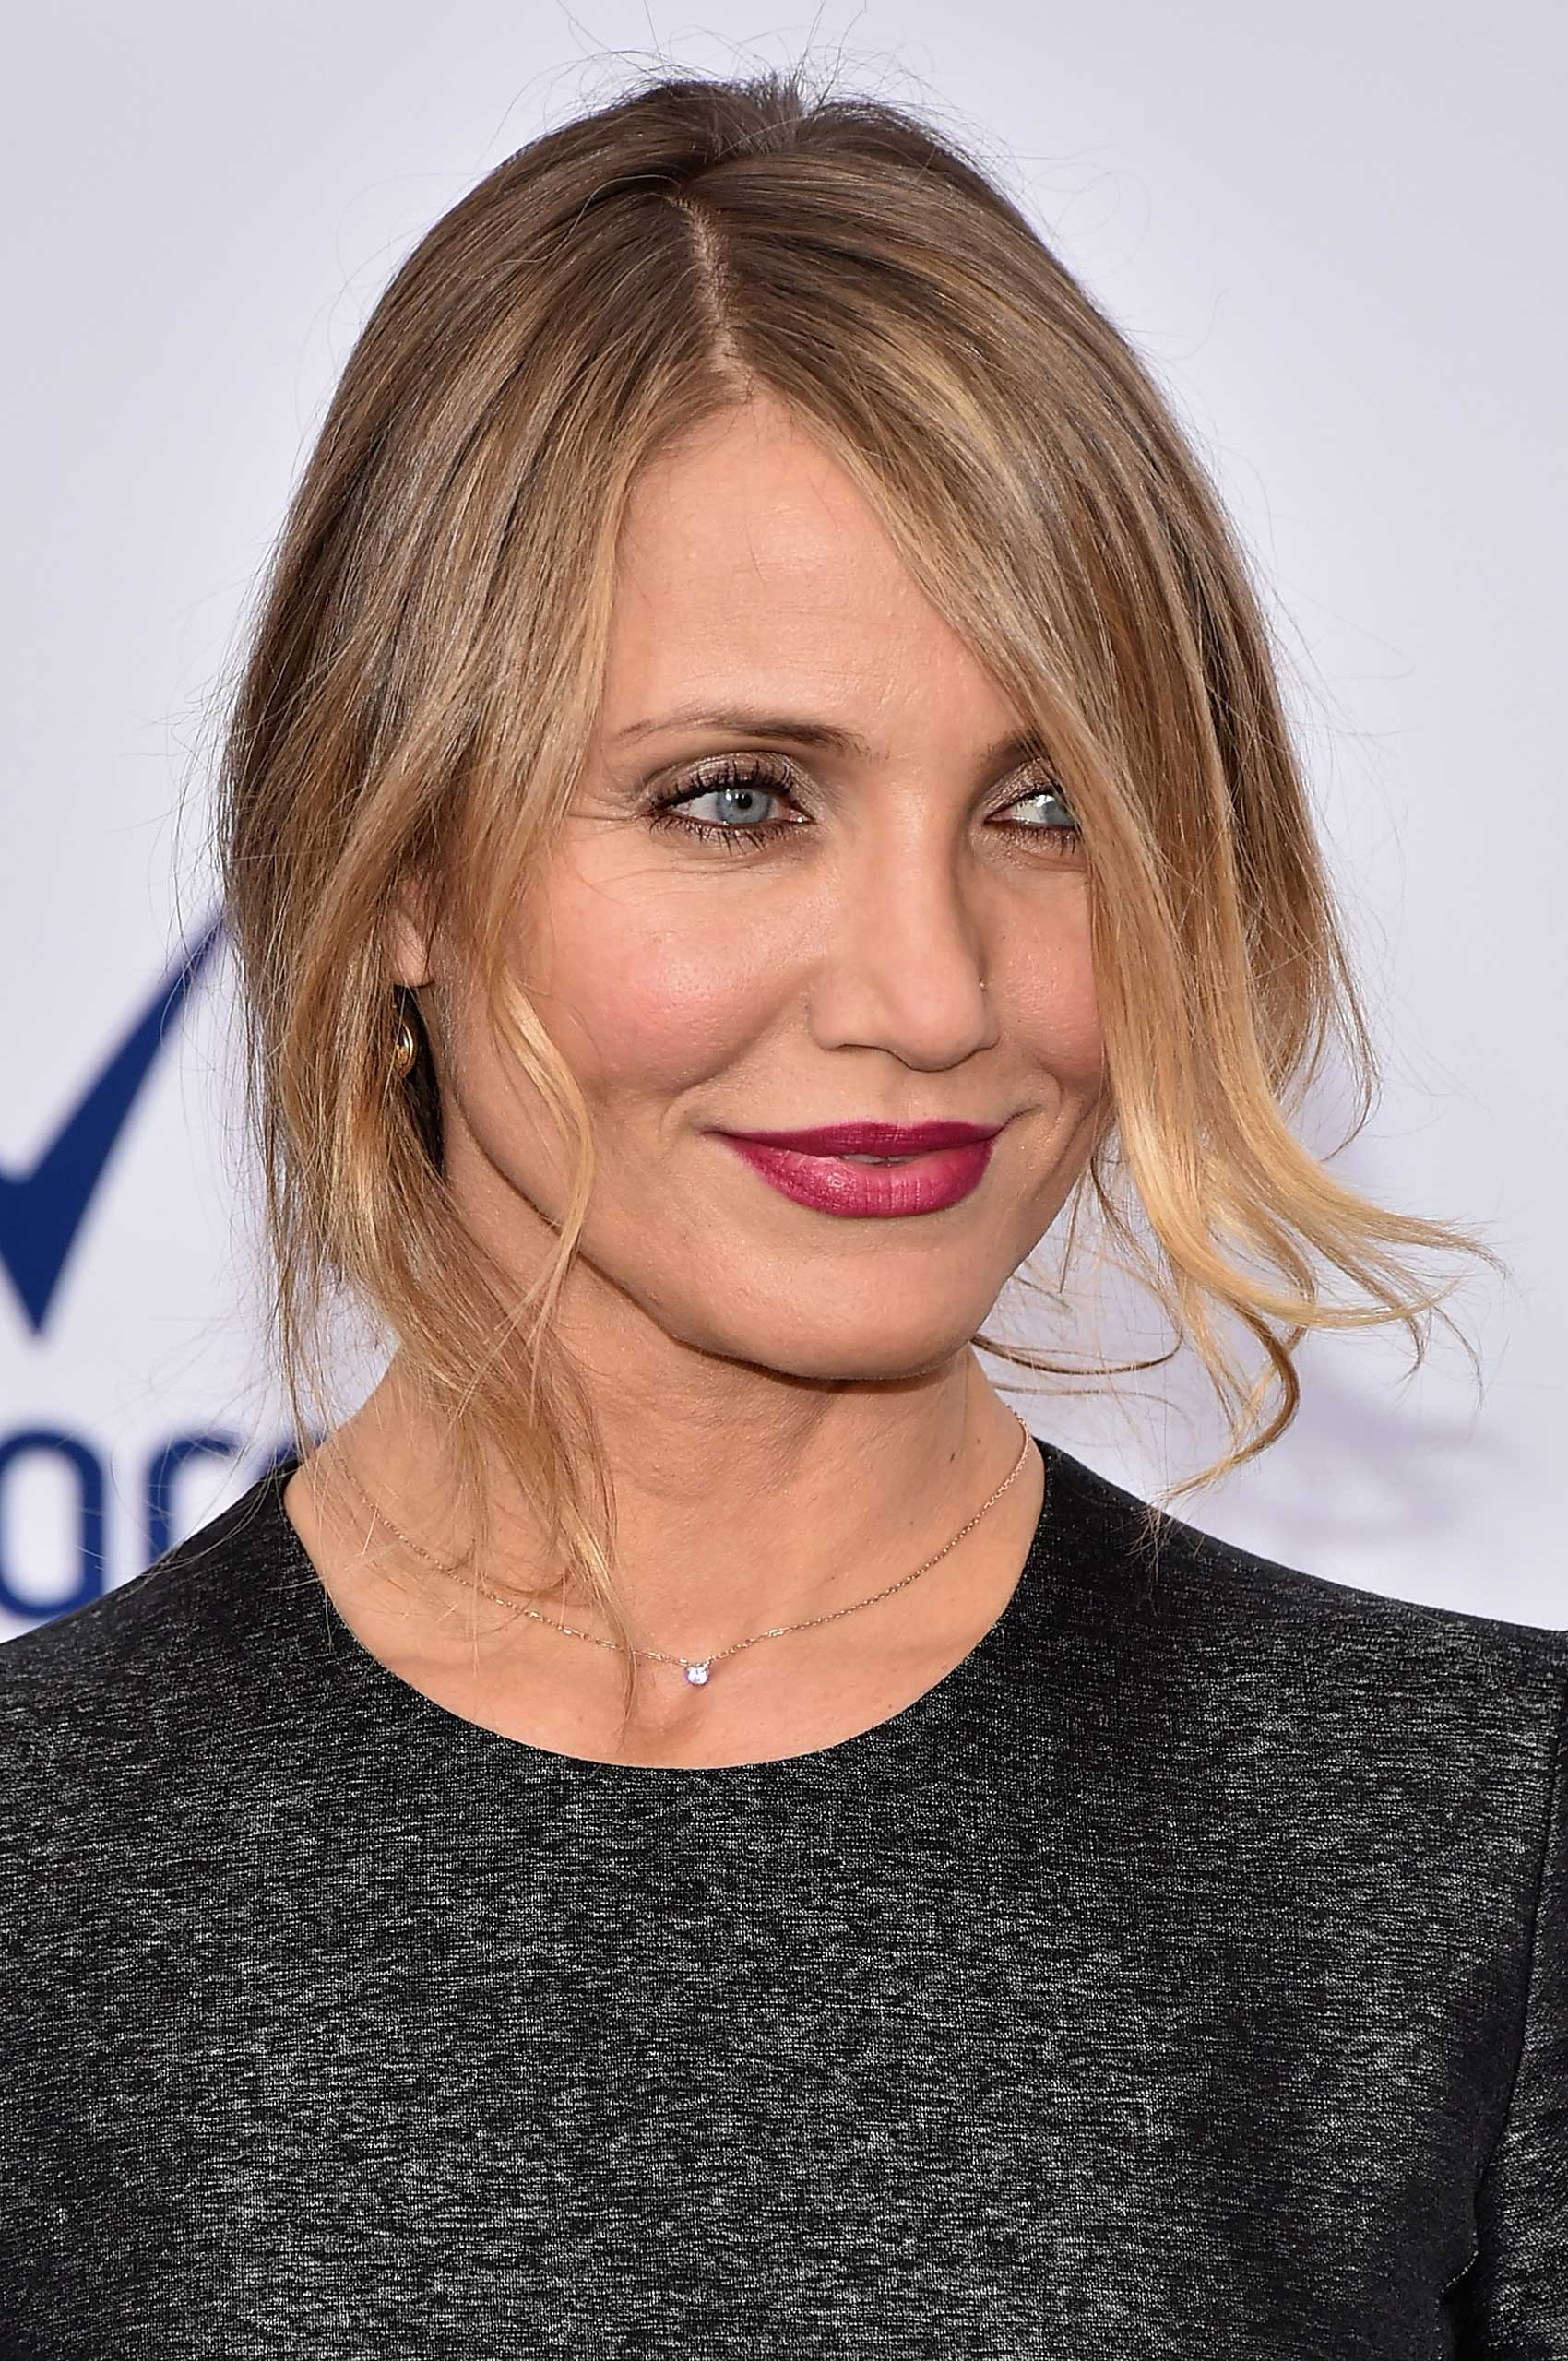 <b>Cameron Diaz</b> The Hollywood actress, and four time Golden Globe nominee, has a father from Cuba.